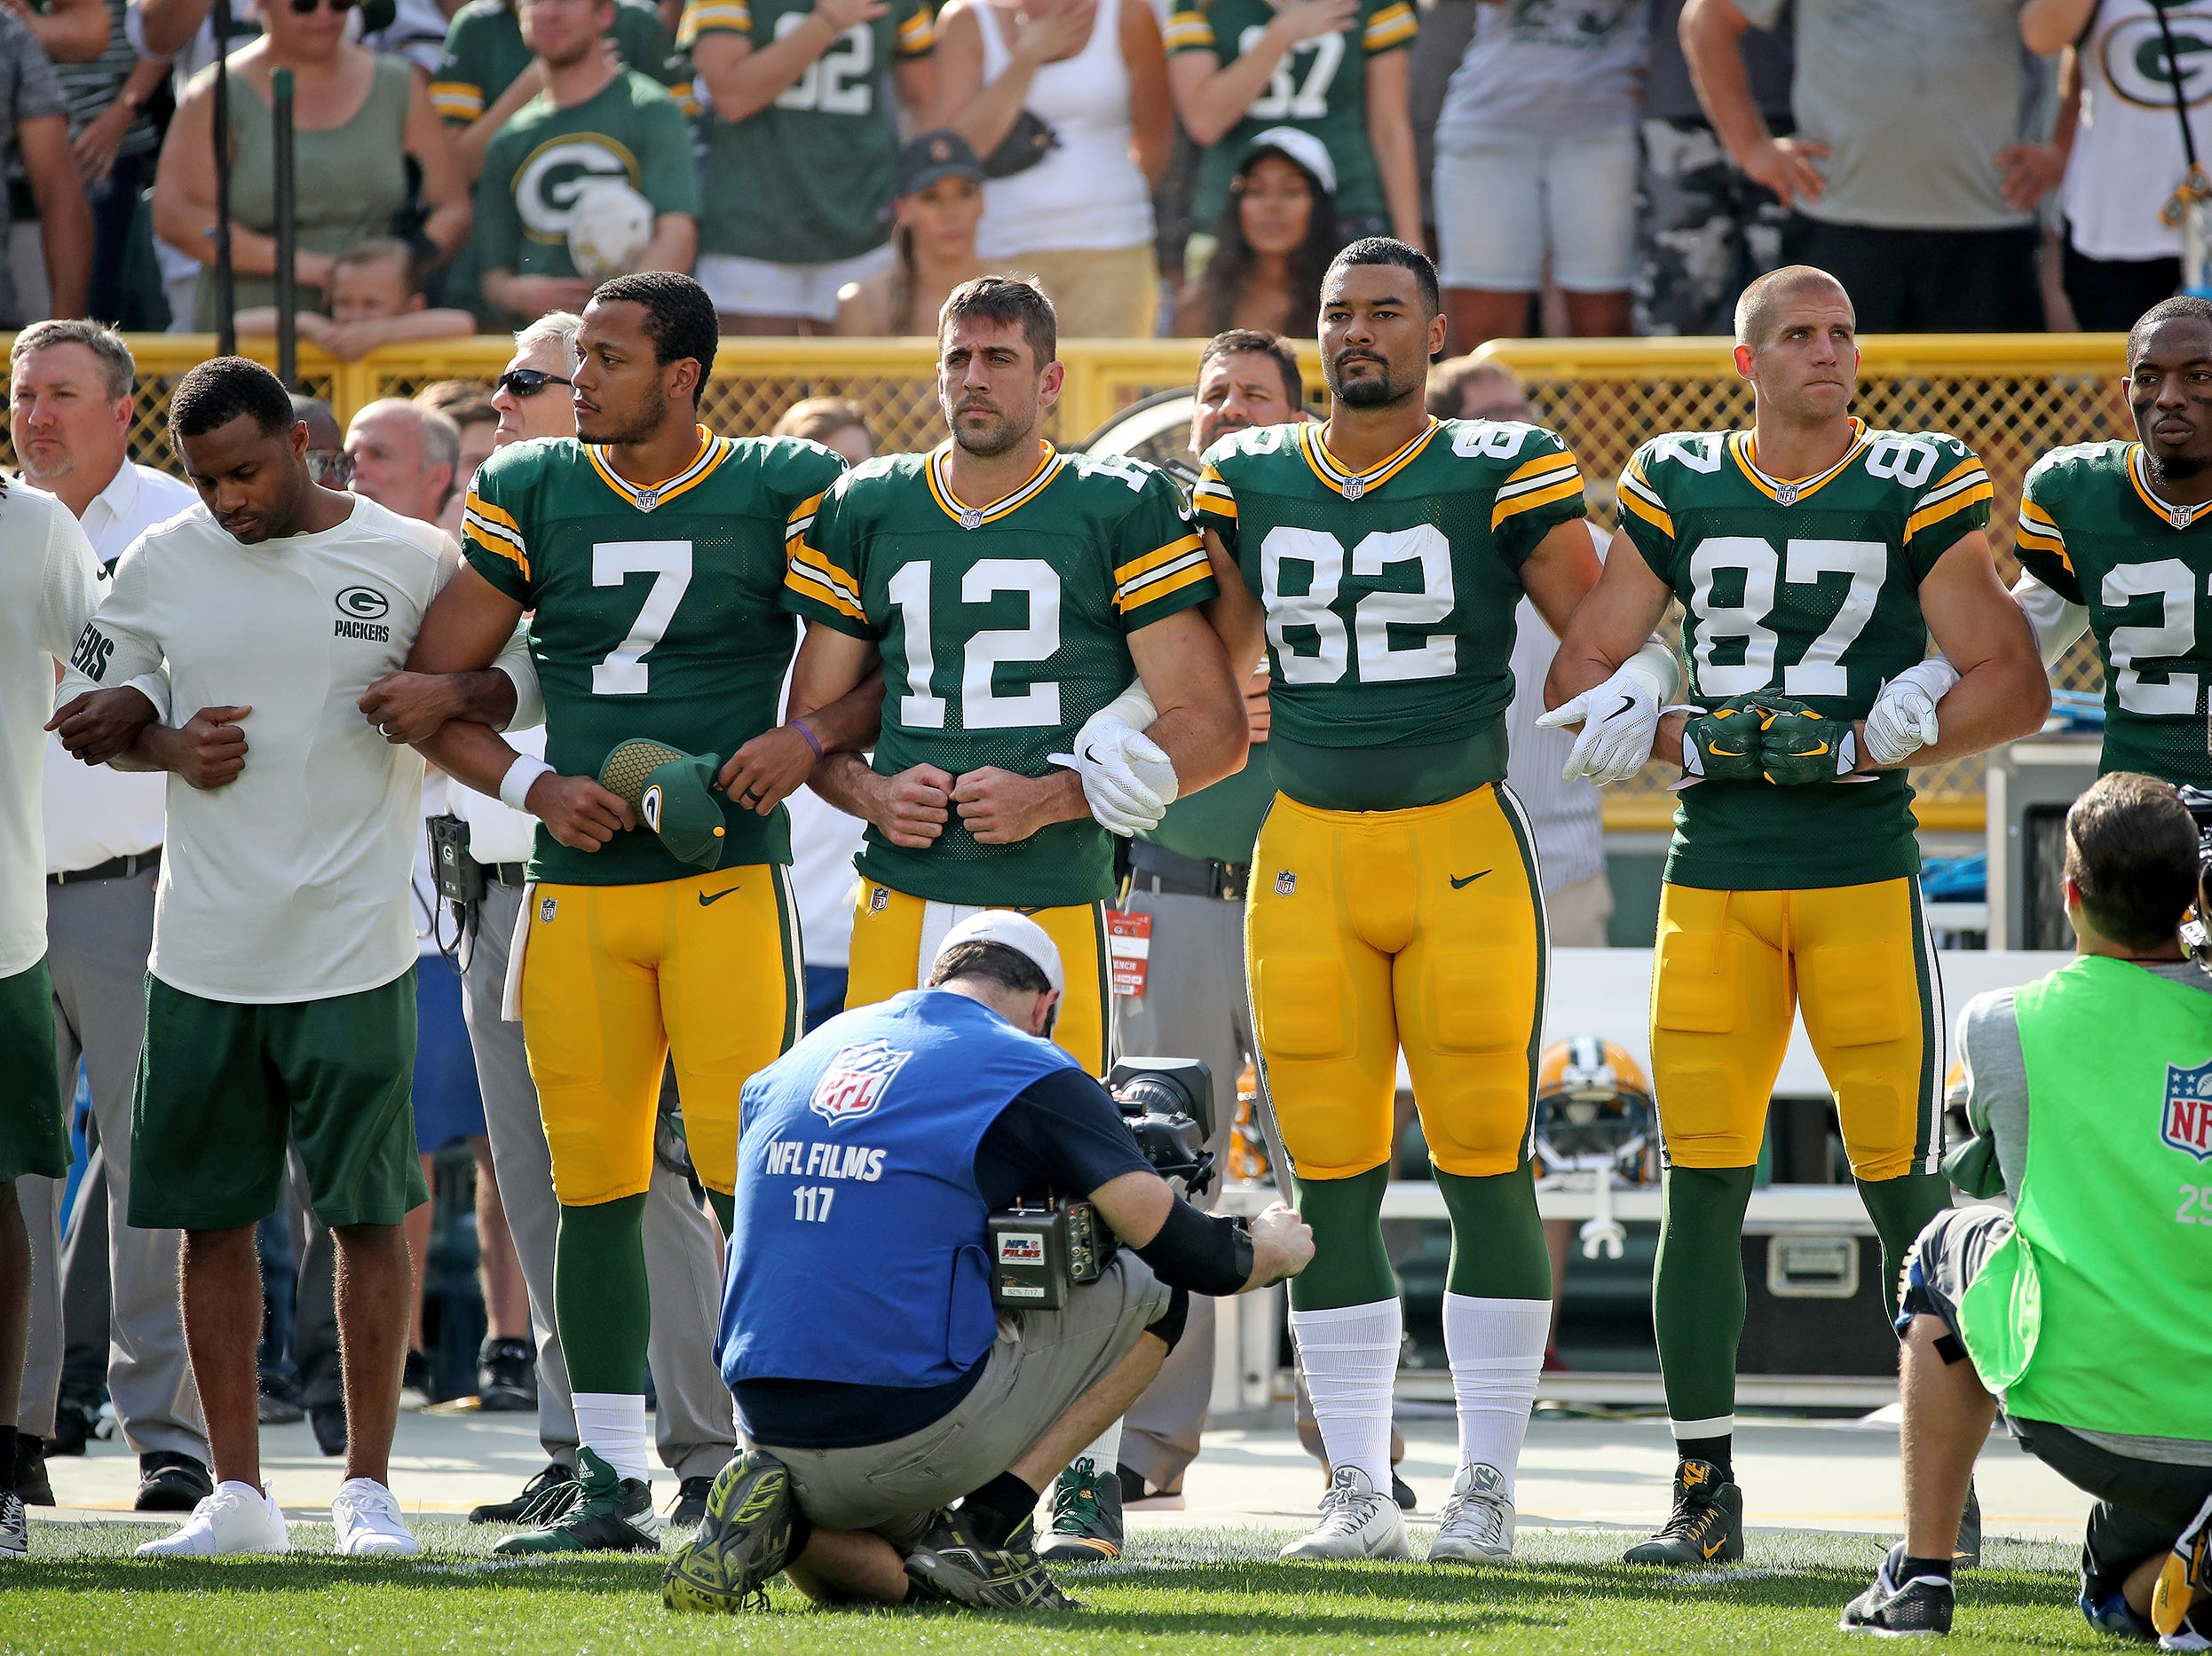 Green Bay Packers quarterback Aaron Rodgers (12), quarterback Brett Hundley (7), tight end Richard Rodgers (82), wide receiver Jordy Nelson (87) and free safety Ha Ha Clinton-Dix (21) link arms in solidarity during the National Anthem before the game against the Cincinnati Bengals Sunday, September 24, 2017 at Lambeau Field in Green Bay, Wis.